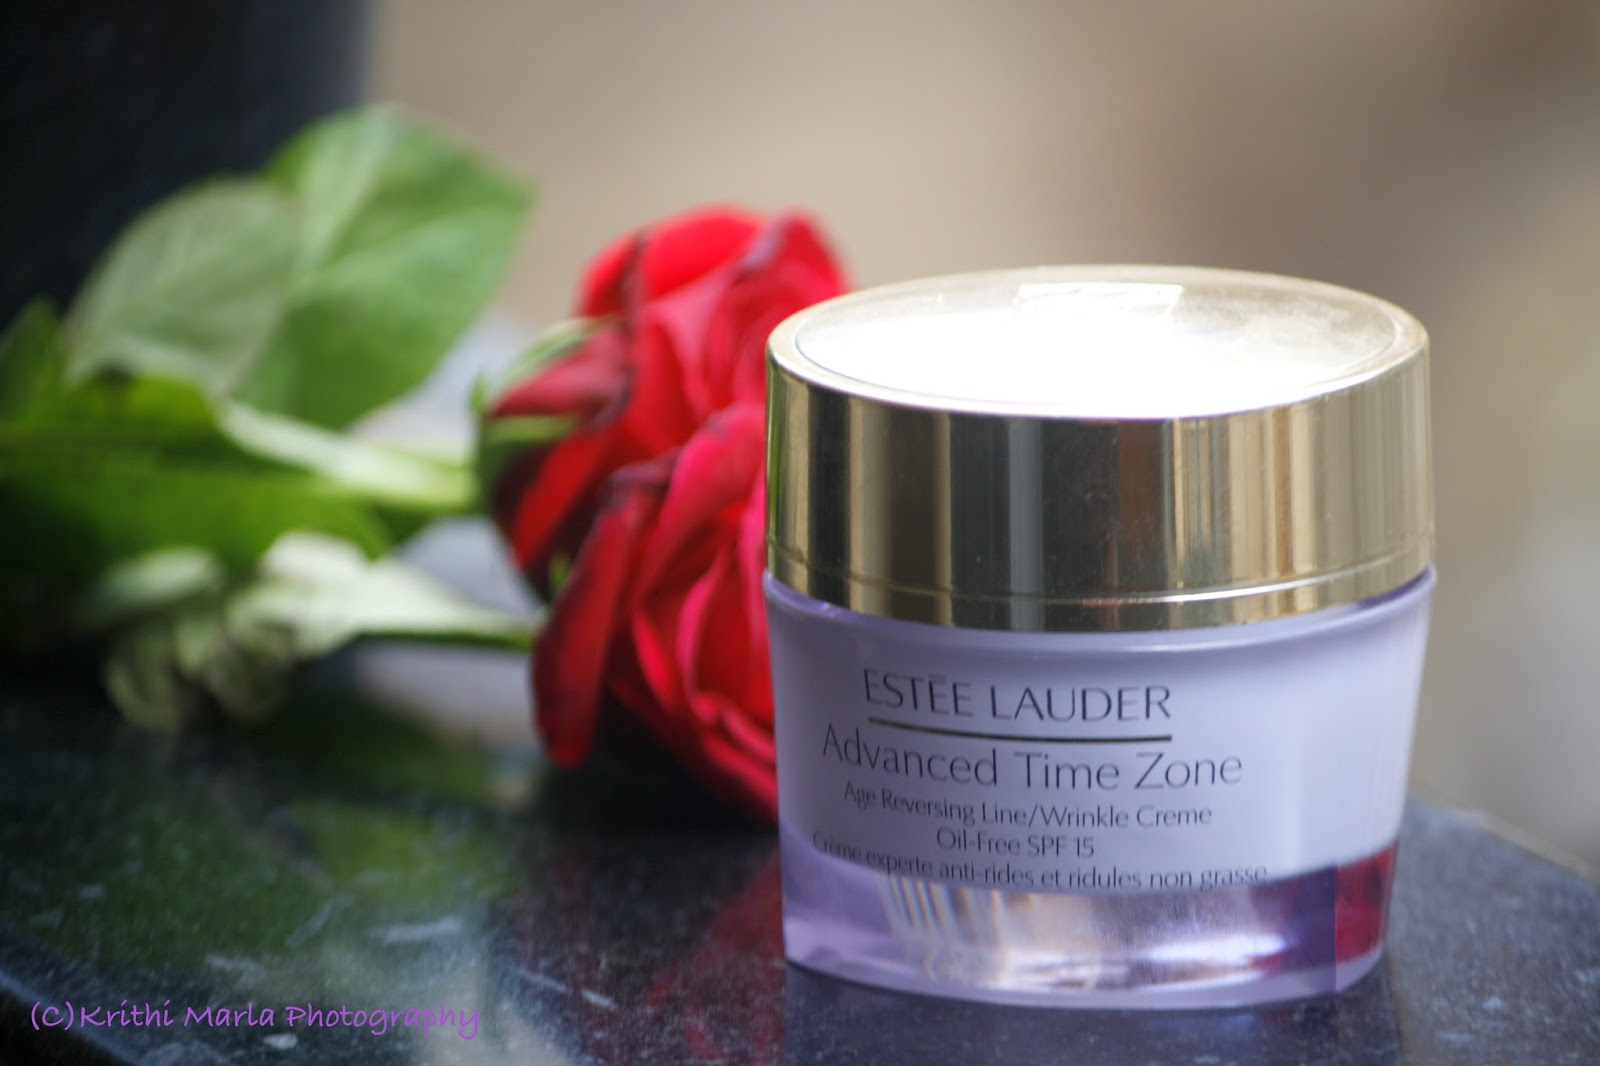 Advanced Time Zone Age Reversing Line/Wrinkle Creme SPF 15 by Estée Lauder #15